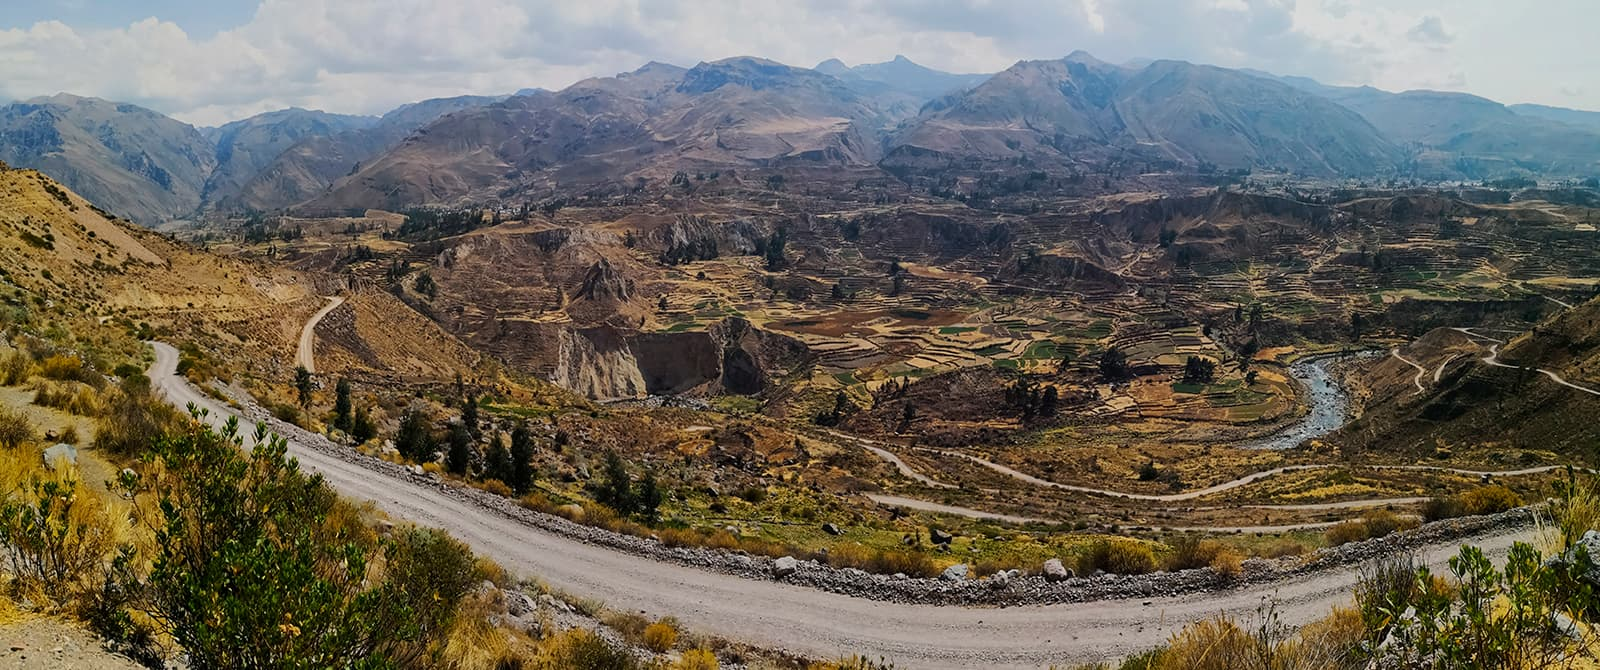 colca canion in arequipa